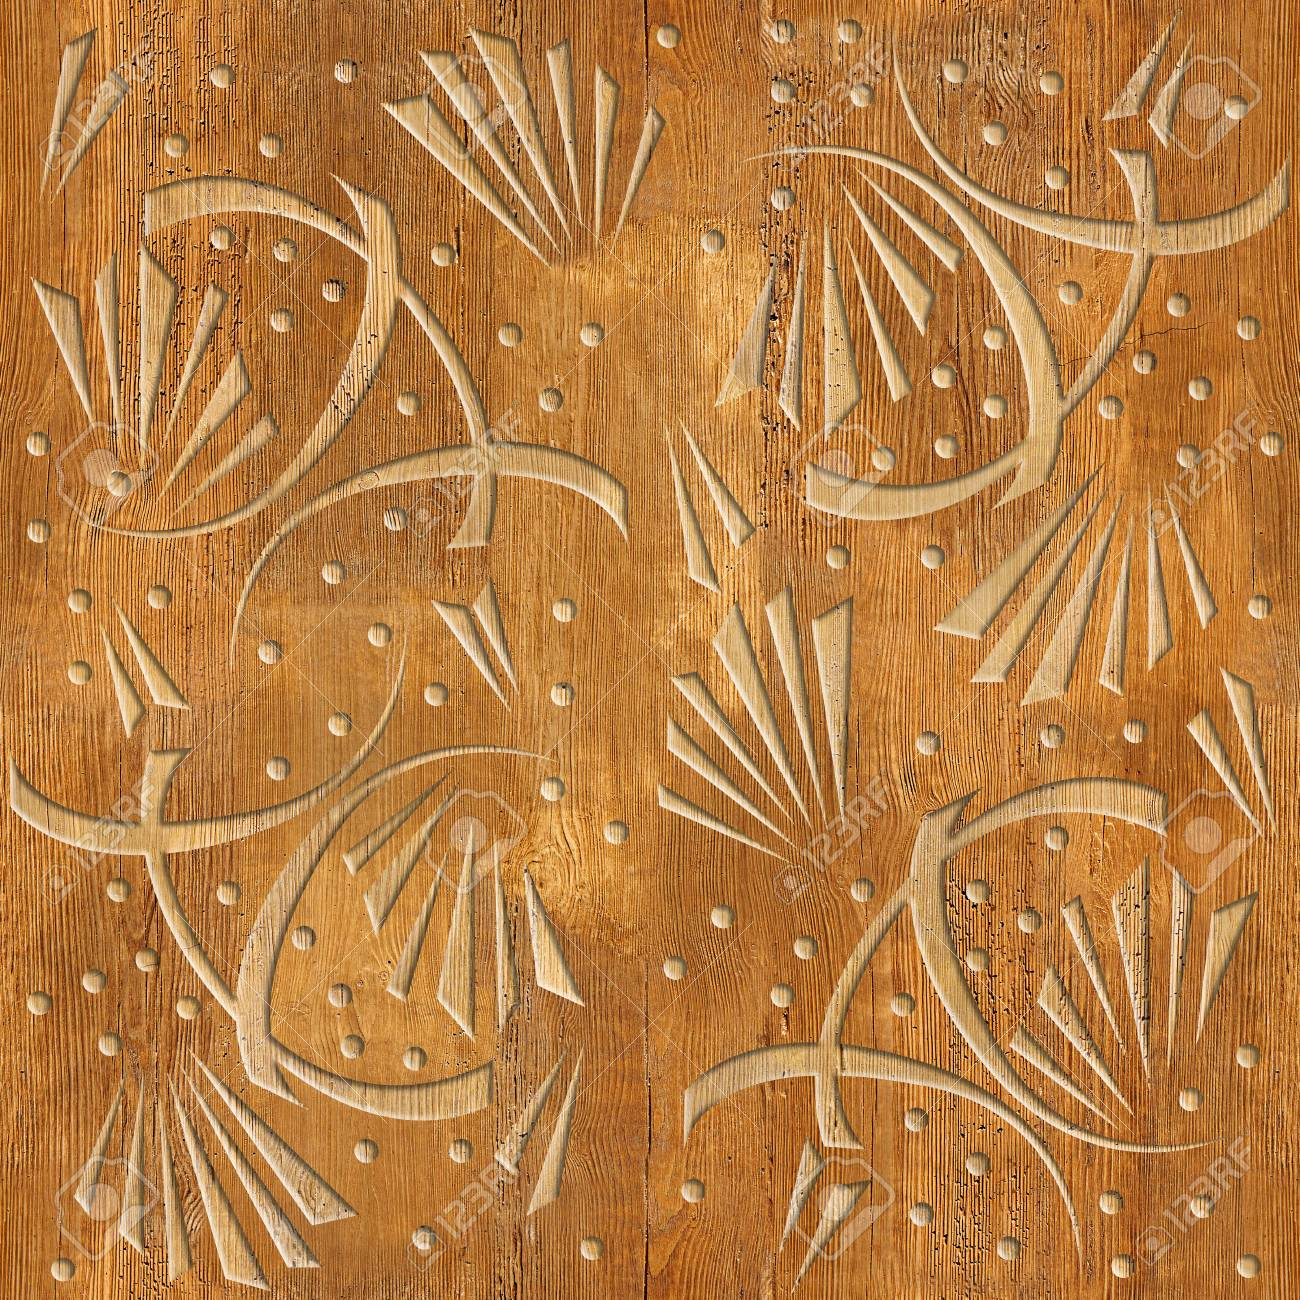 Abstract Decorative Wallpaper Wood Texture Seamless Background